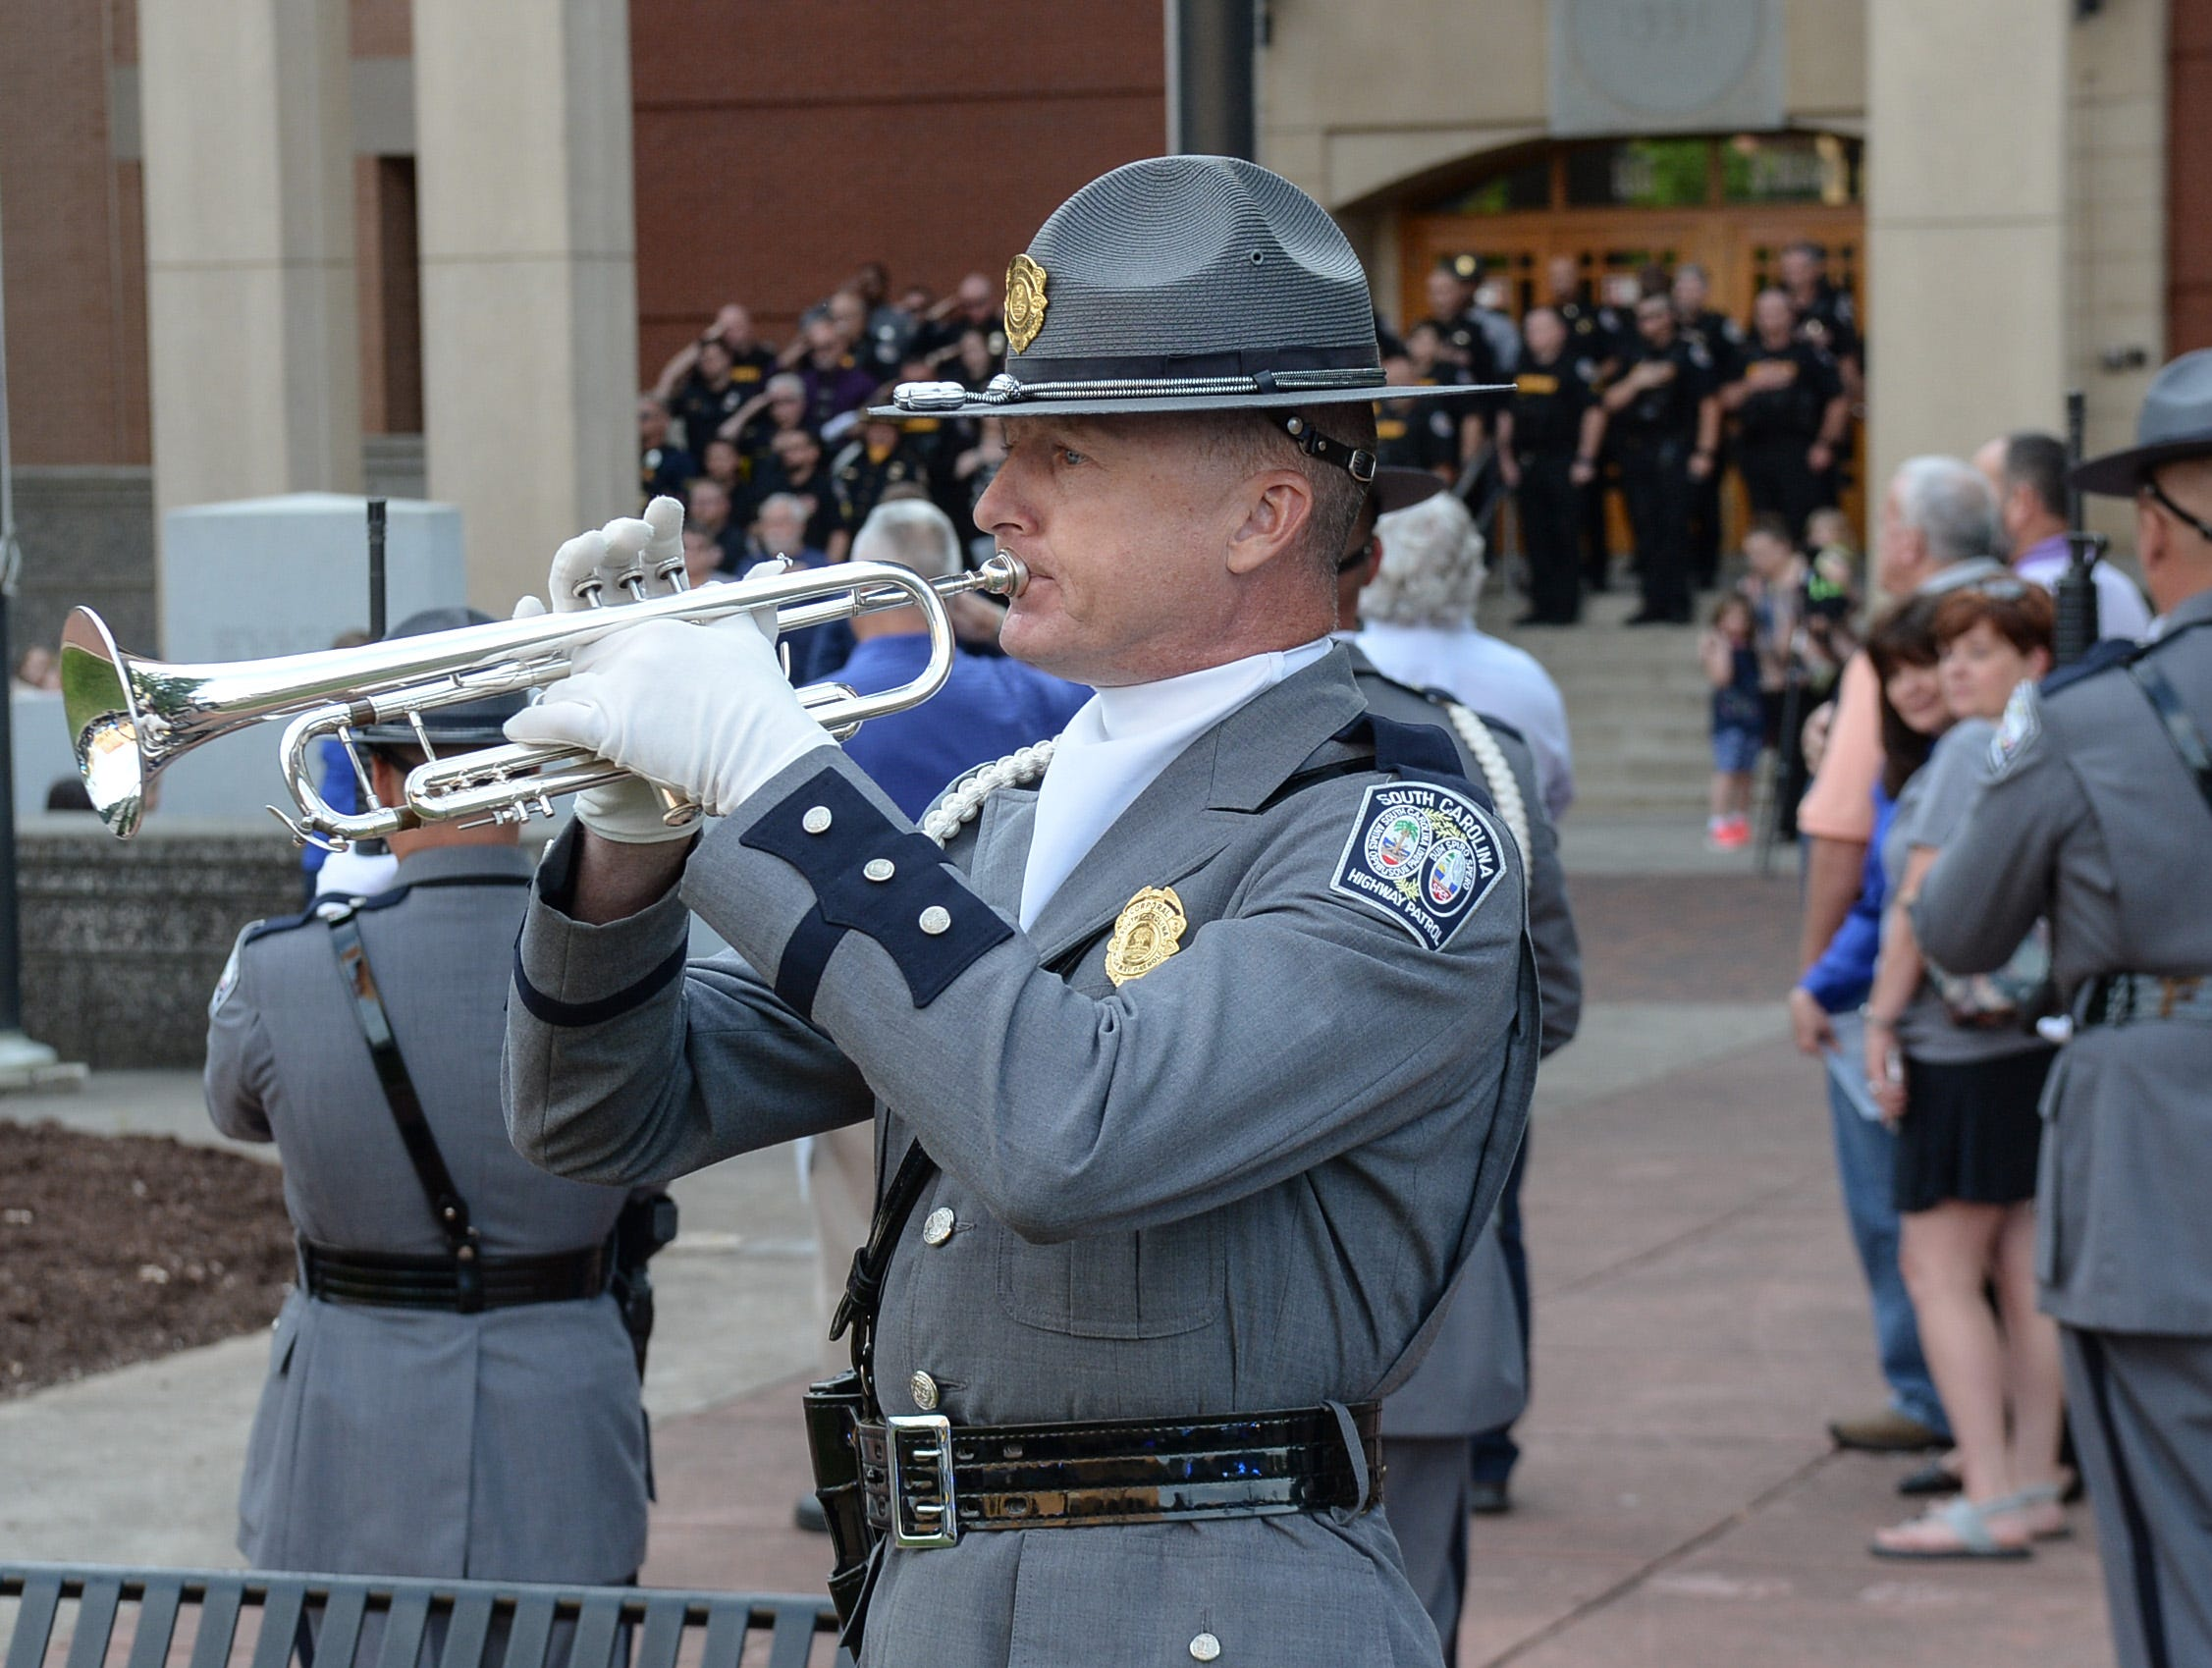 South Carolina Highway Patrol Honor Guard Jeff Baker of Columbia plays 'Taps' during the 2019 Peace Officer Memorial Service Wednesday May 15, 2019, in front of the Anderson County courthouse. People attended to help honor the lives of officers lost in the line of duty.